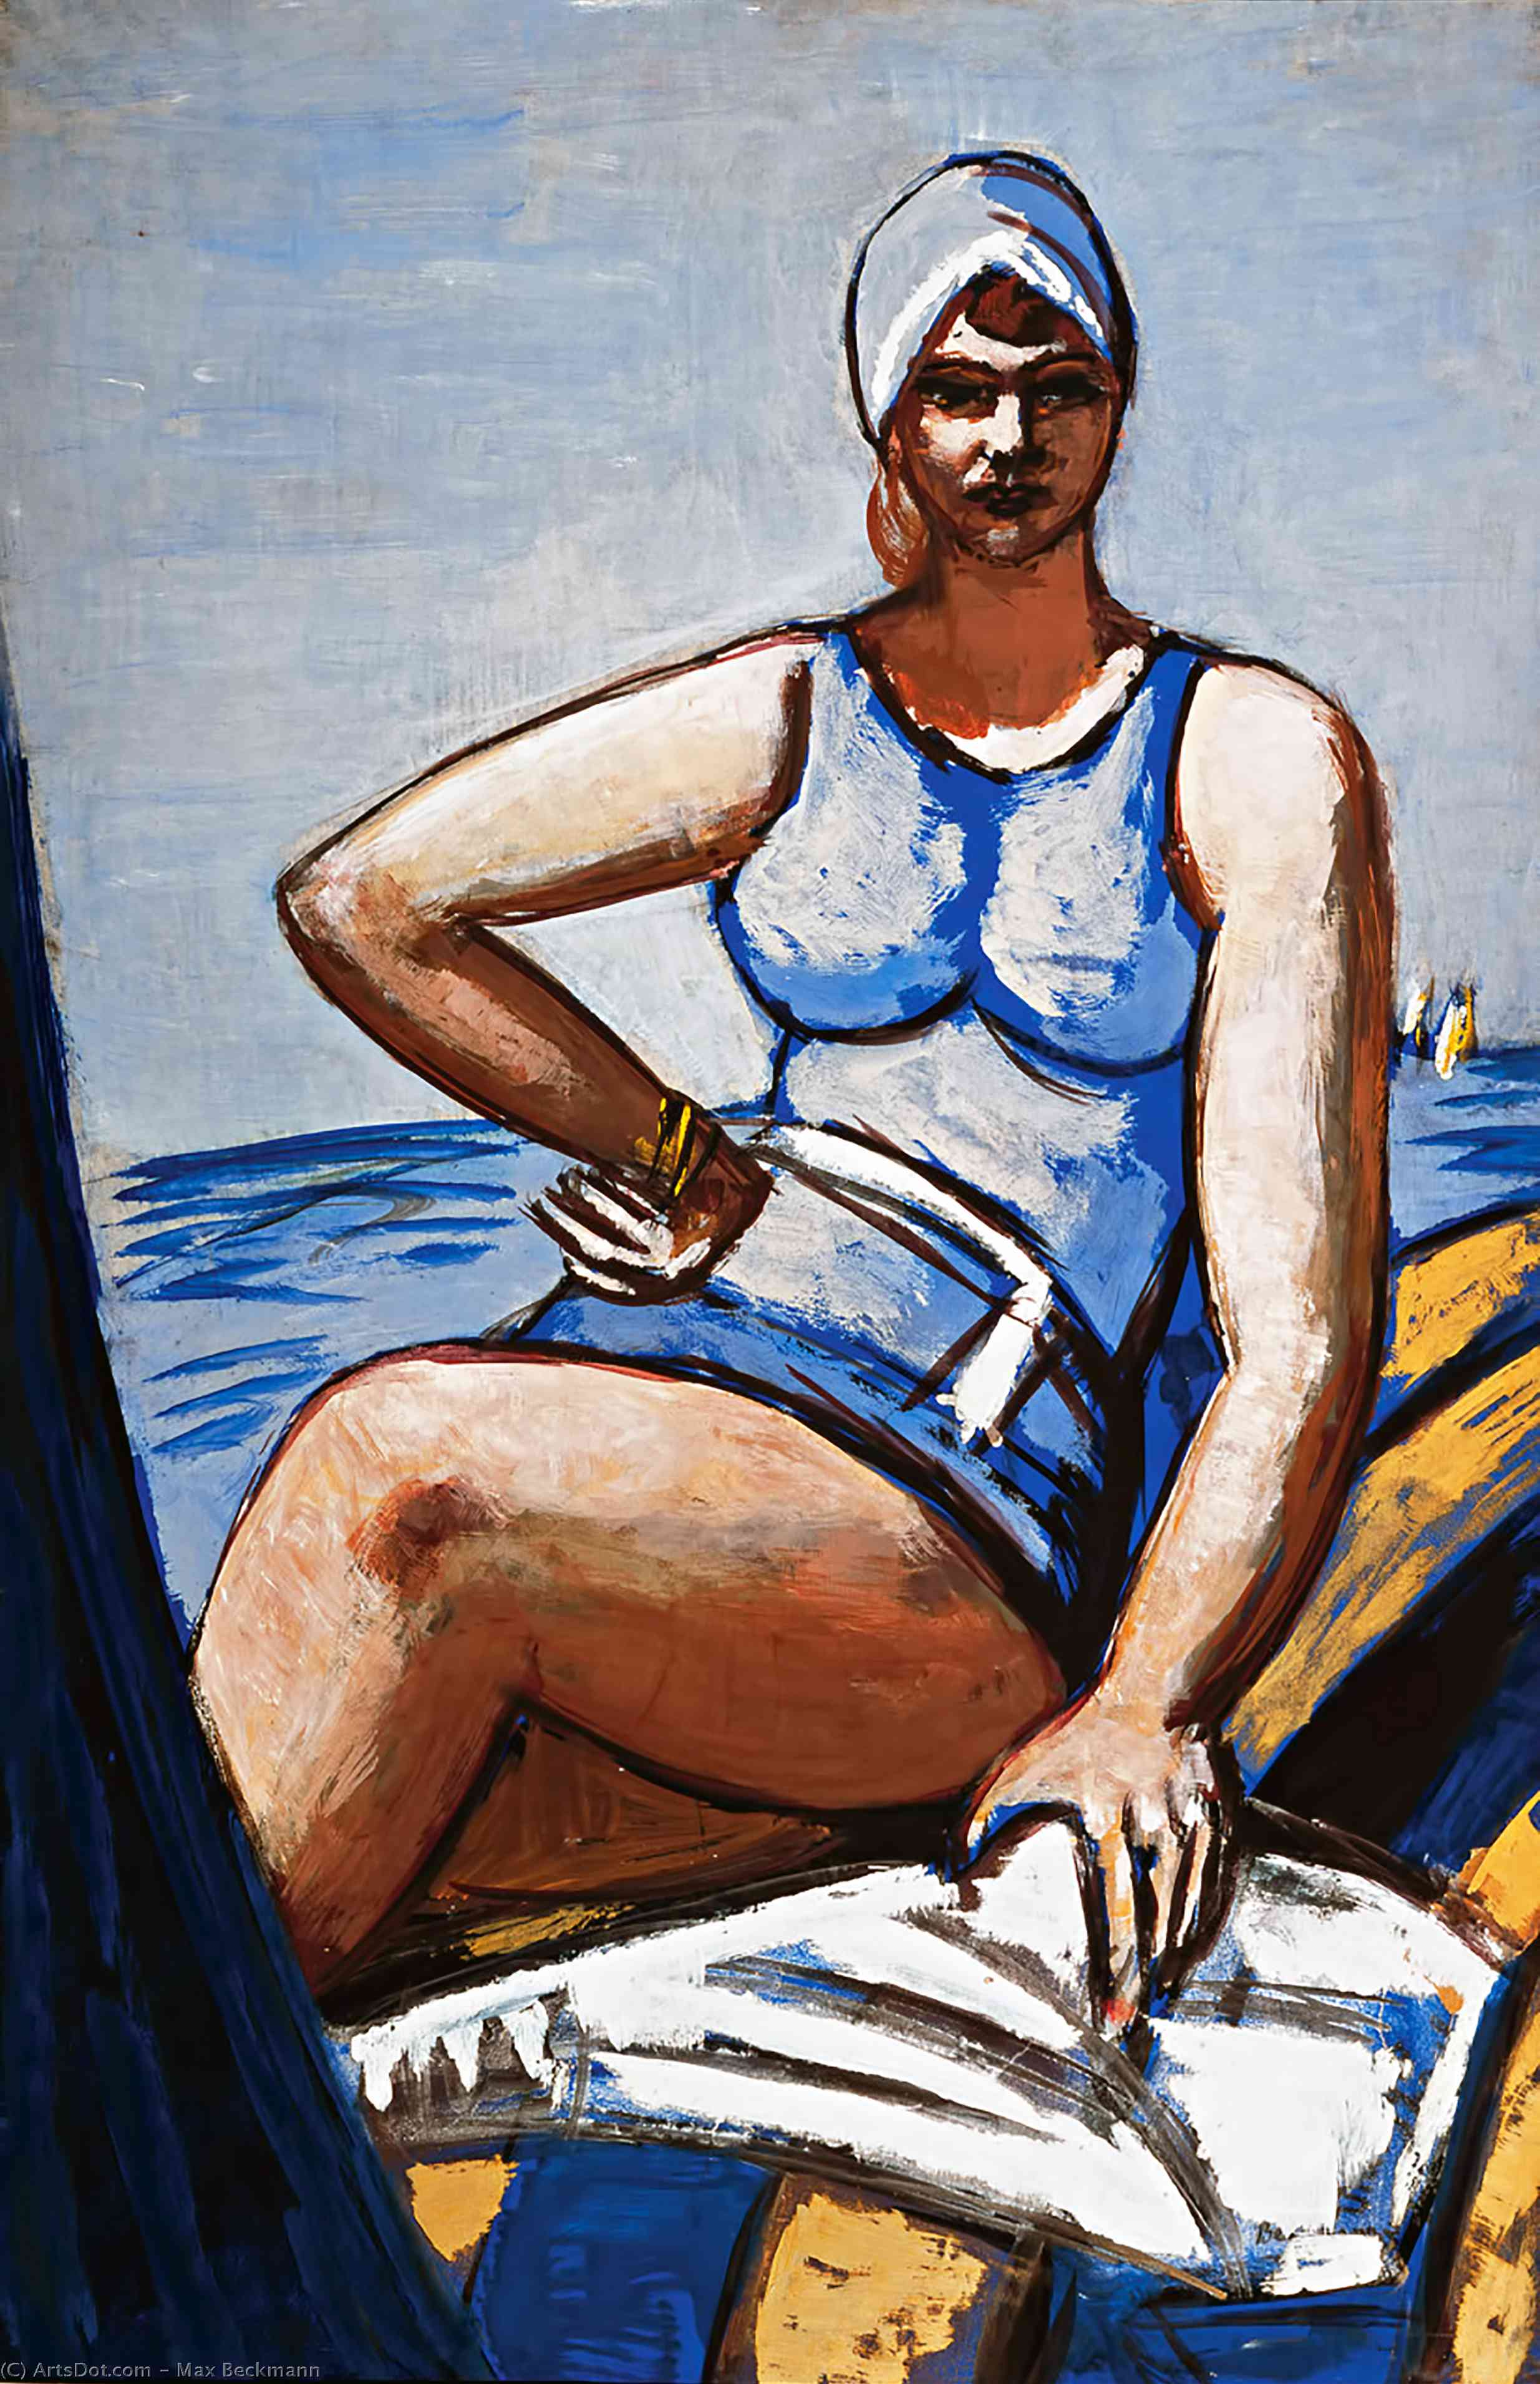 Wikioo.org - The Encyclopedia of Fine Arts - Painting, Artwork by Max Beckmann - Quappi in blue in a boat